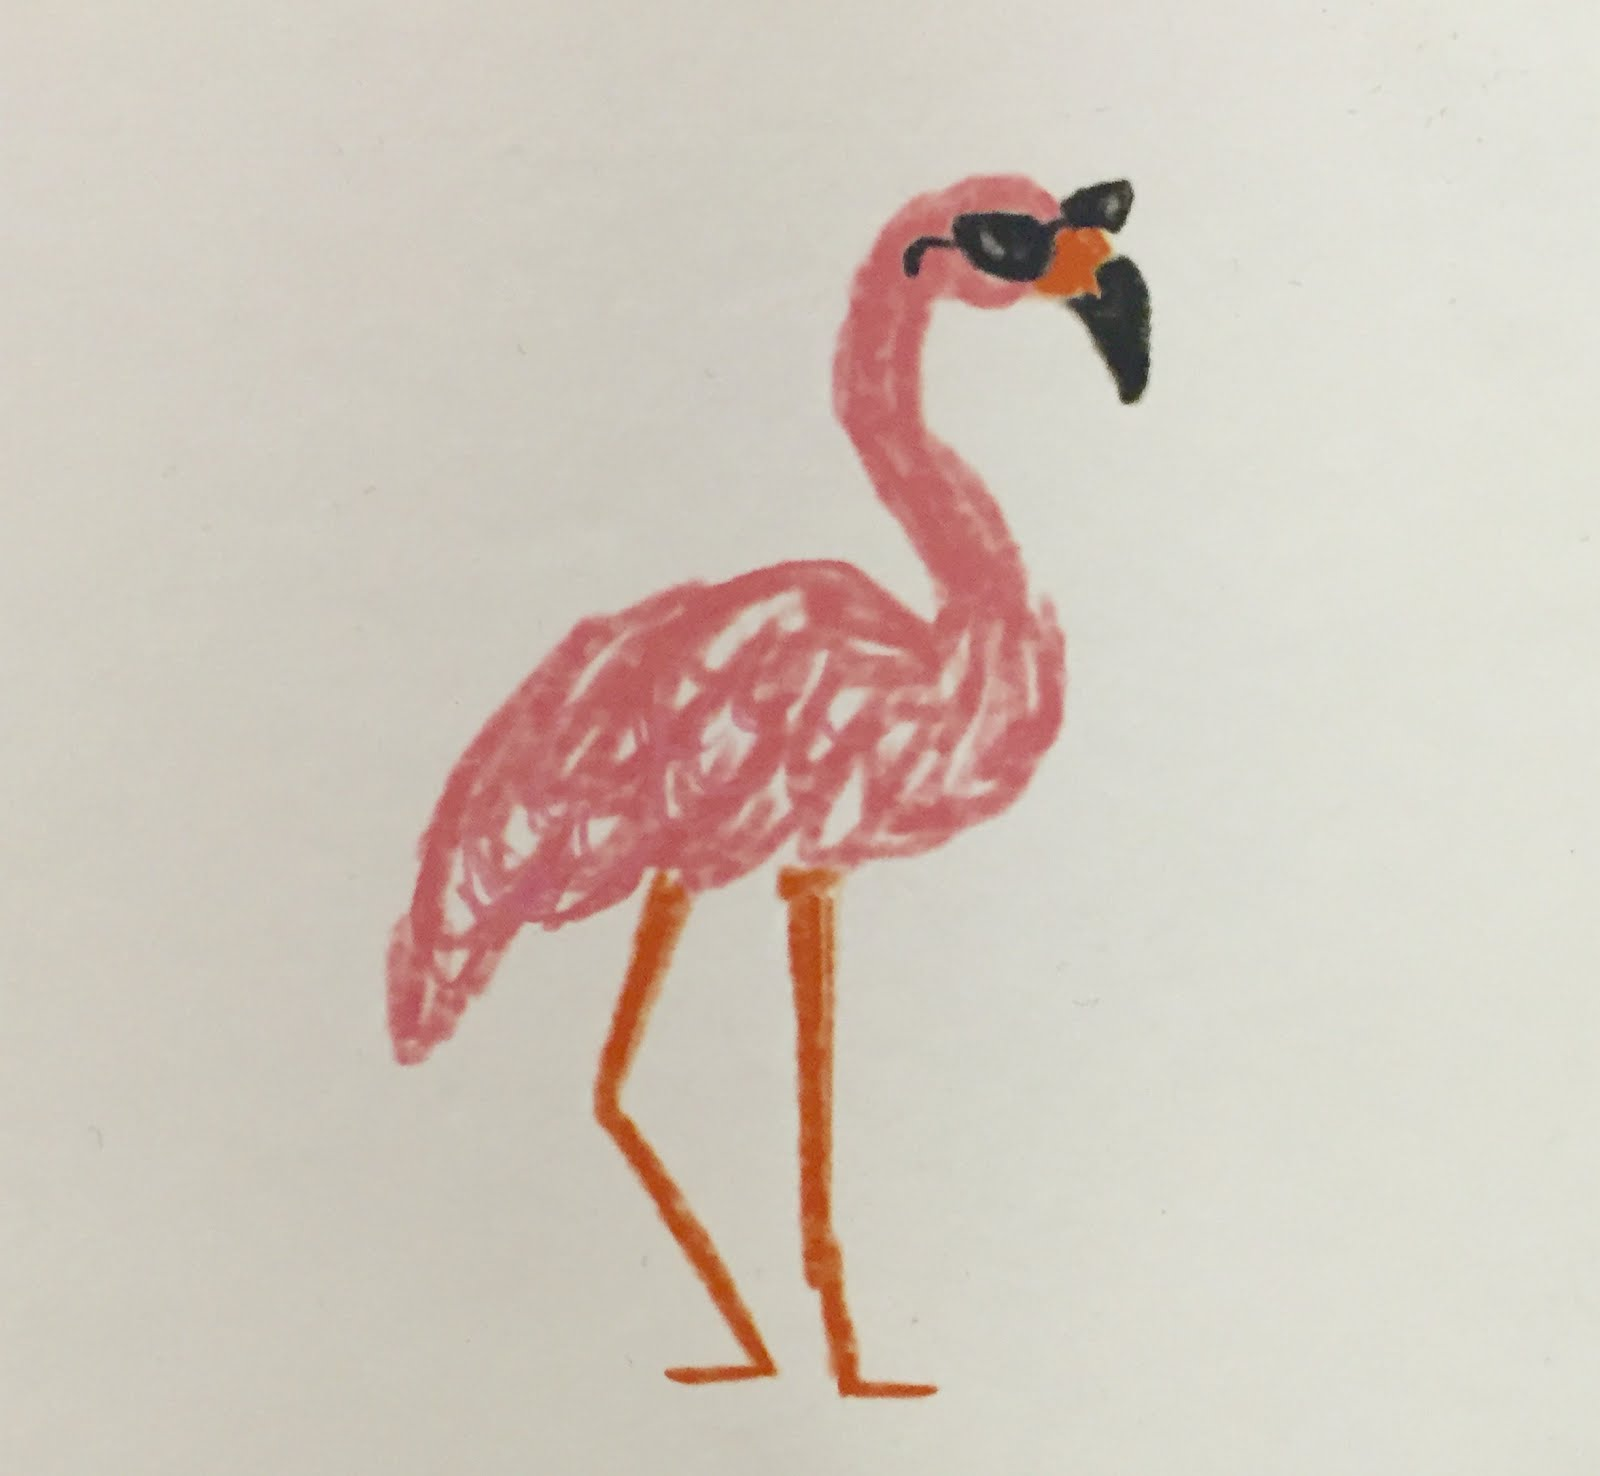 Flamingo's are the best